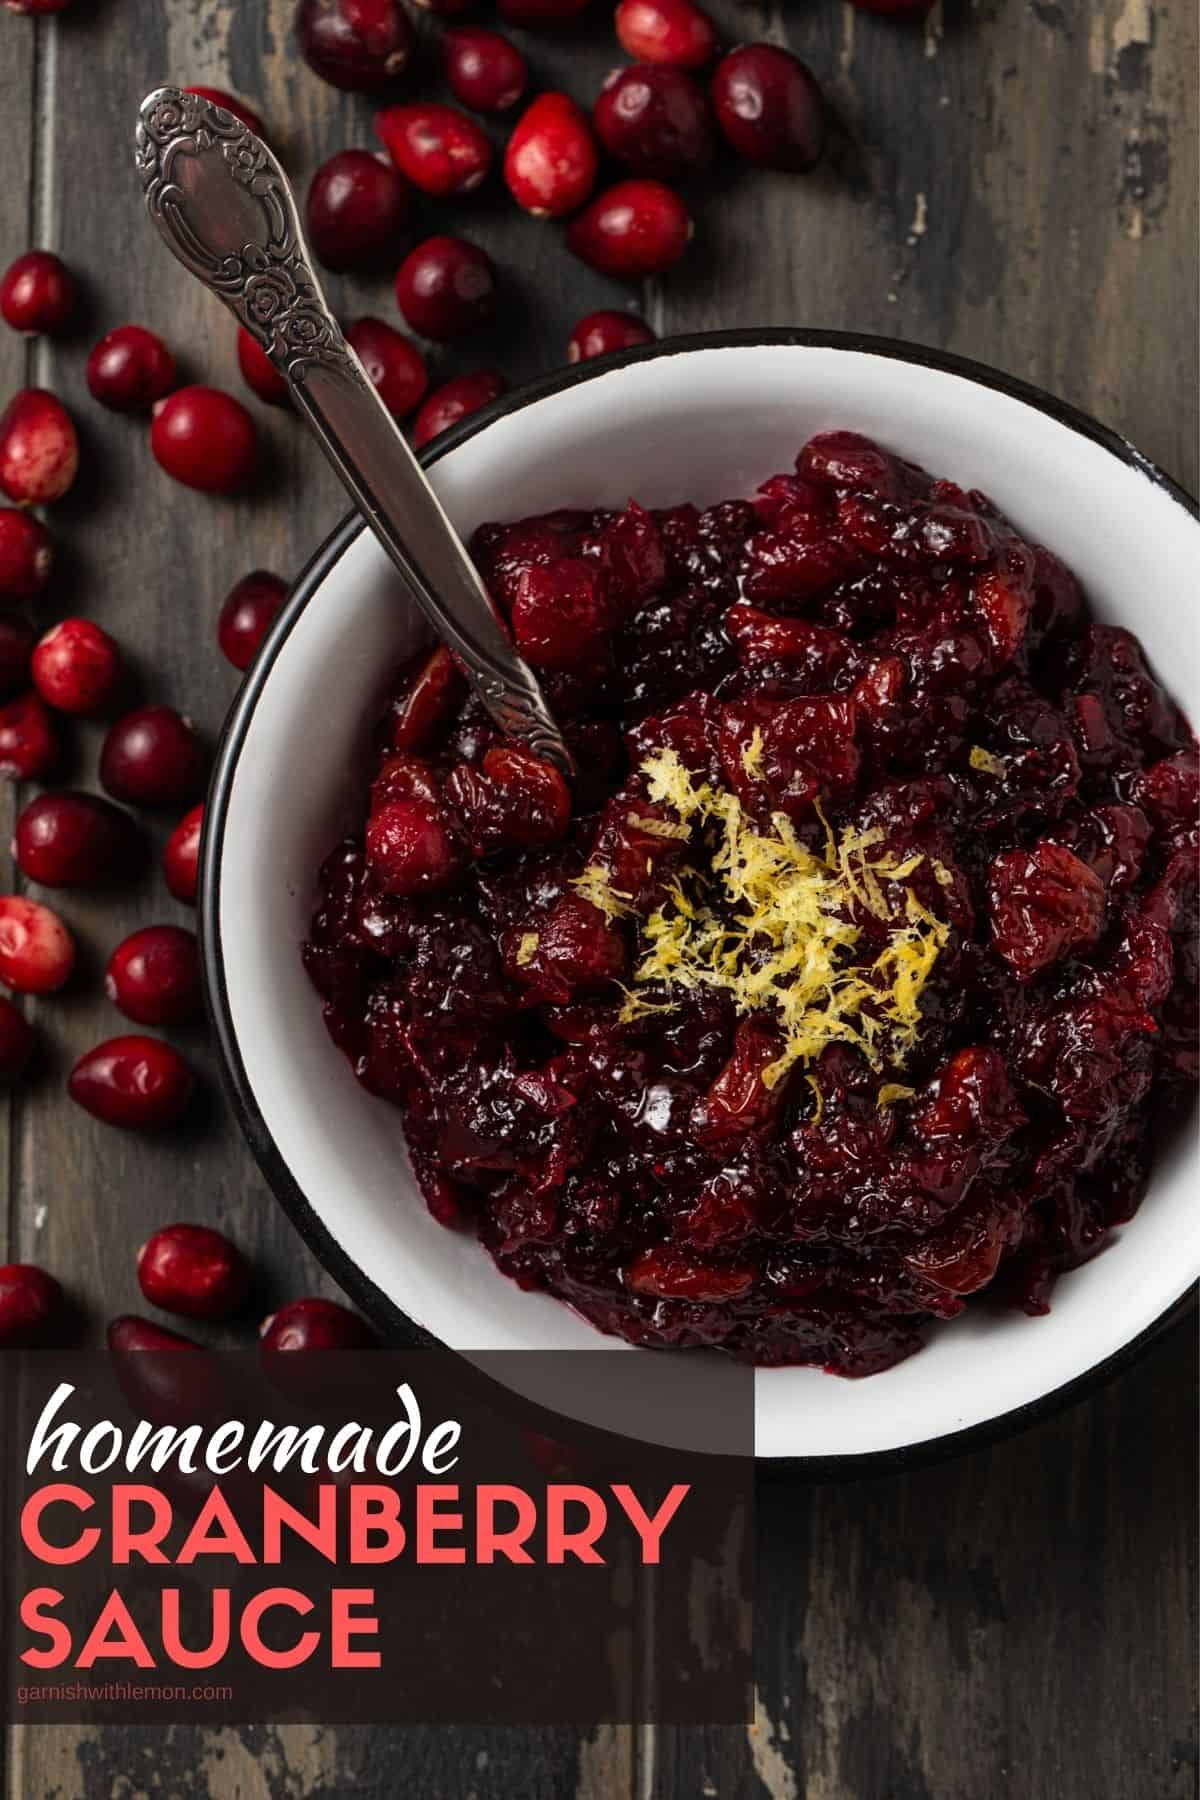 White bowl filled with cranberry sauce. Spoon inside bowl. Lemon zest topping on sauce.